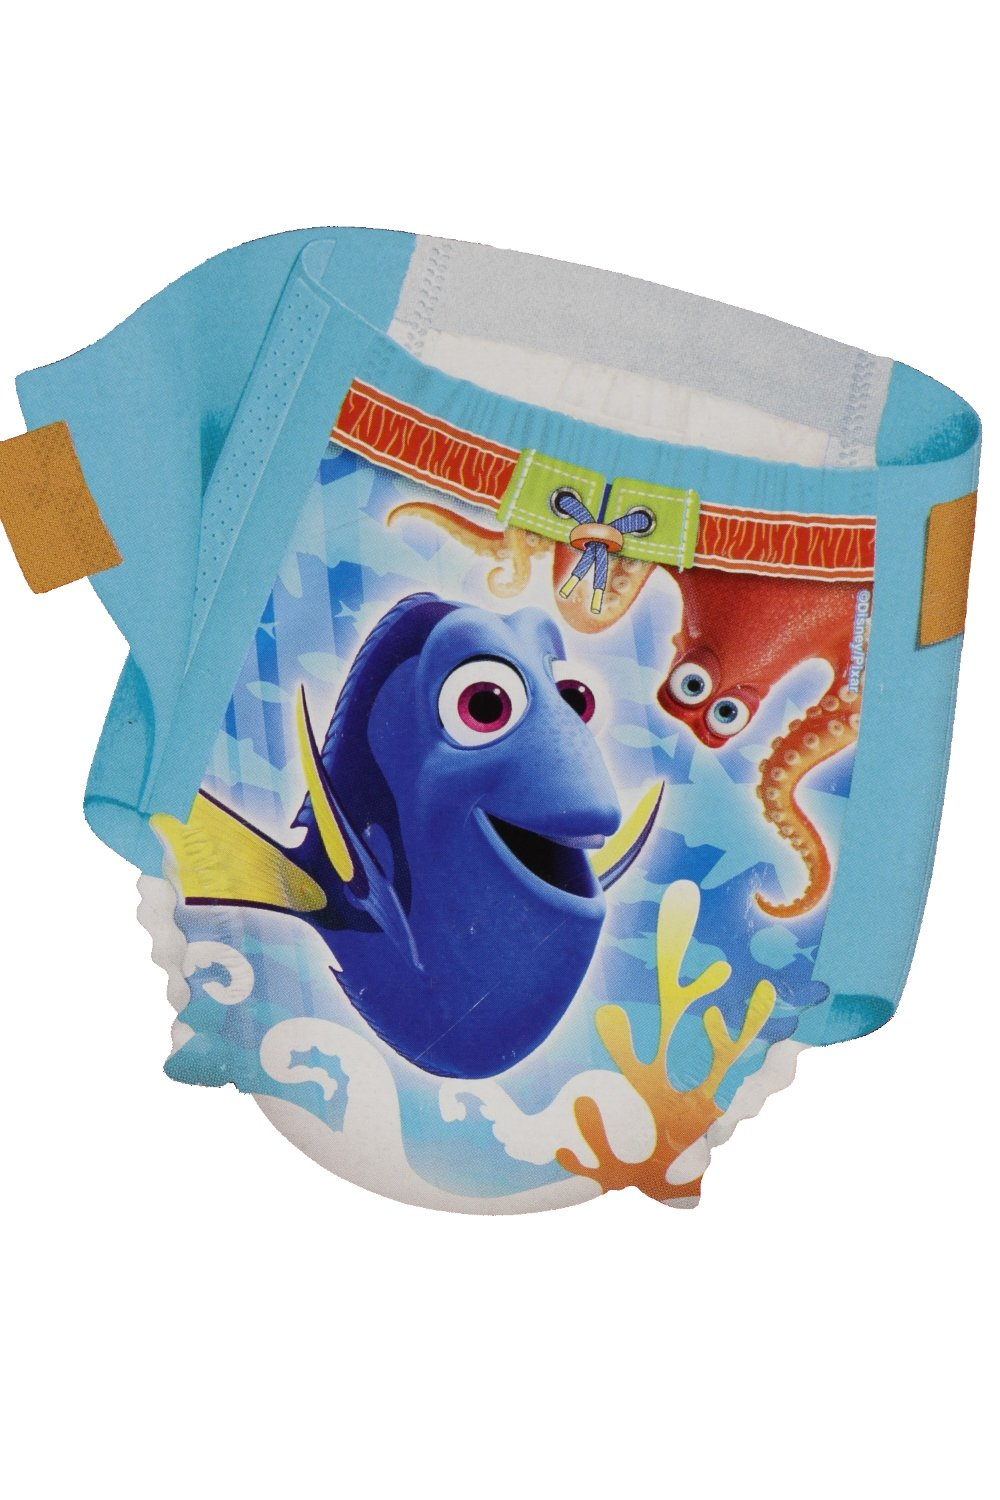 Huggies Little Swimmers Disposable Swimpants Large - Bonus 56 Wipes Included! by Huggies (Image #3)